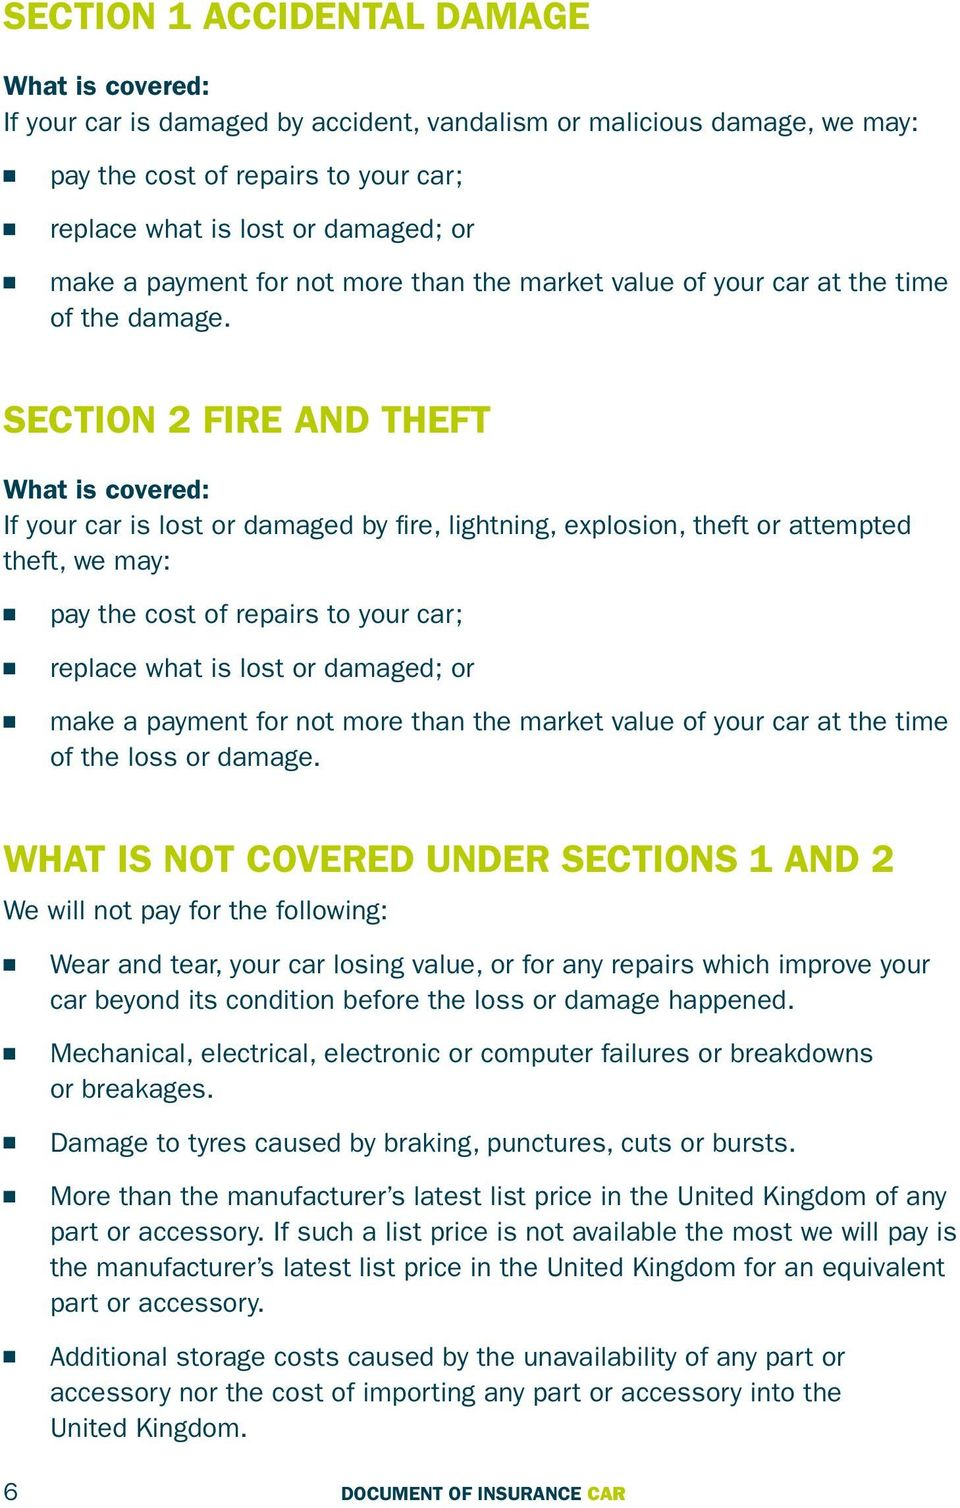 Sectio 2 Fire ad theft What is covered: If your car is lost or damaged by fire, lightig, explosio, theft or attempted theft, we may: pay the cost of repairs to your car; replace what is lost or